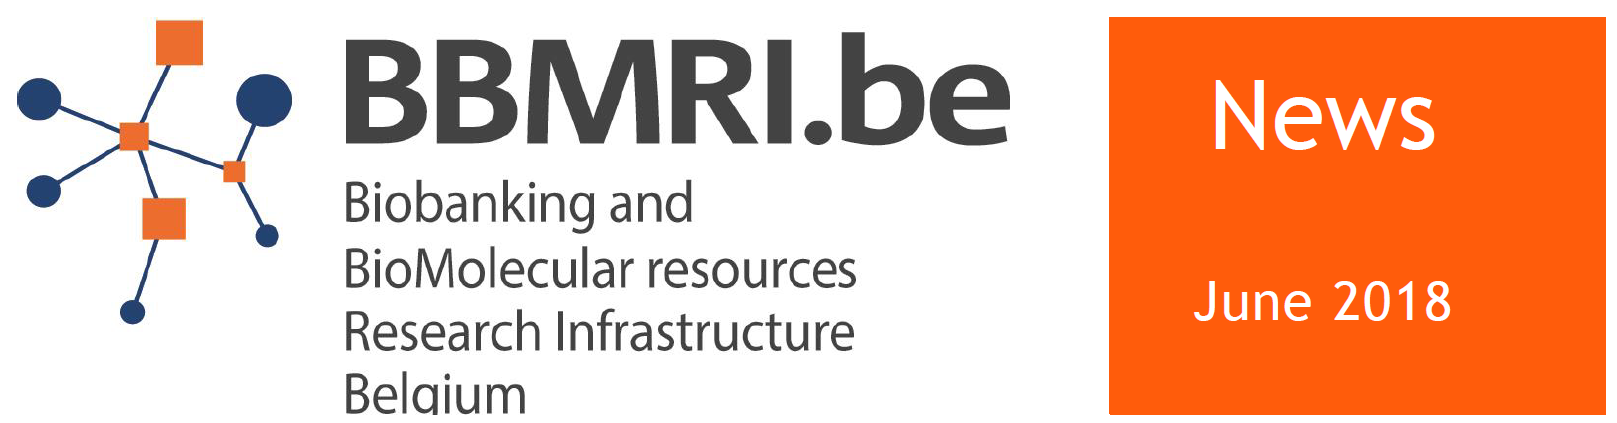 BBMRI.be NEWS Issue 2 now available